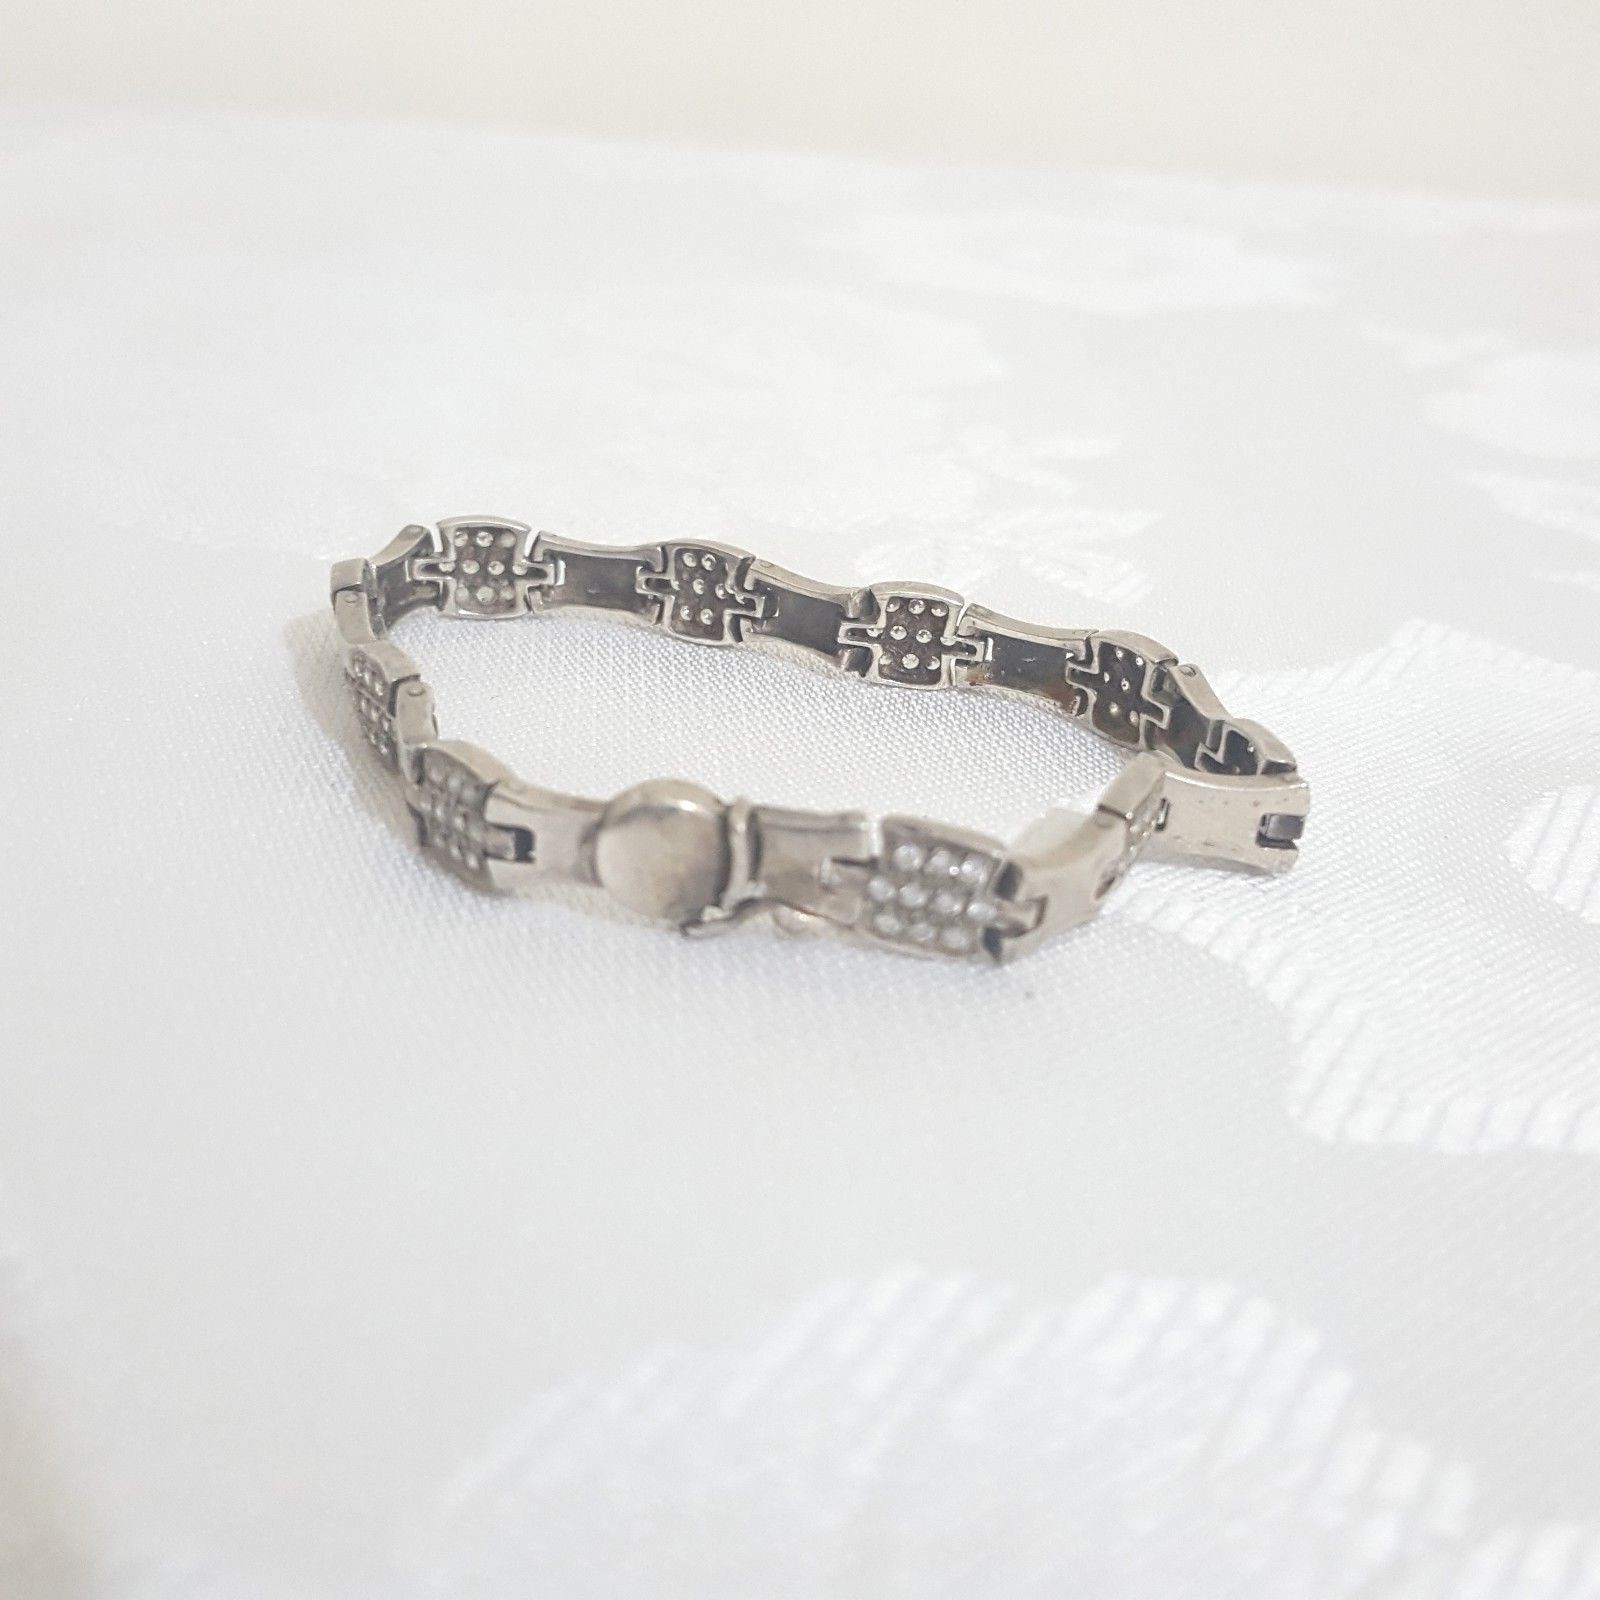 Primary image for silver bracelet Hand Signed 925 Decorated with Swarovski stones